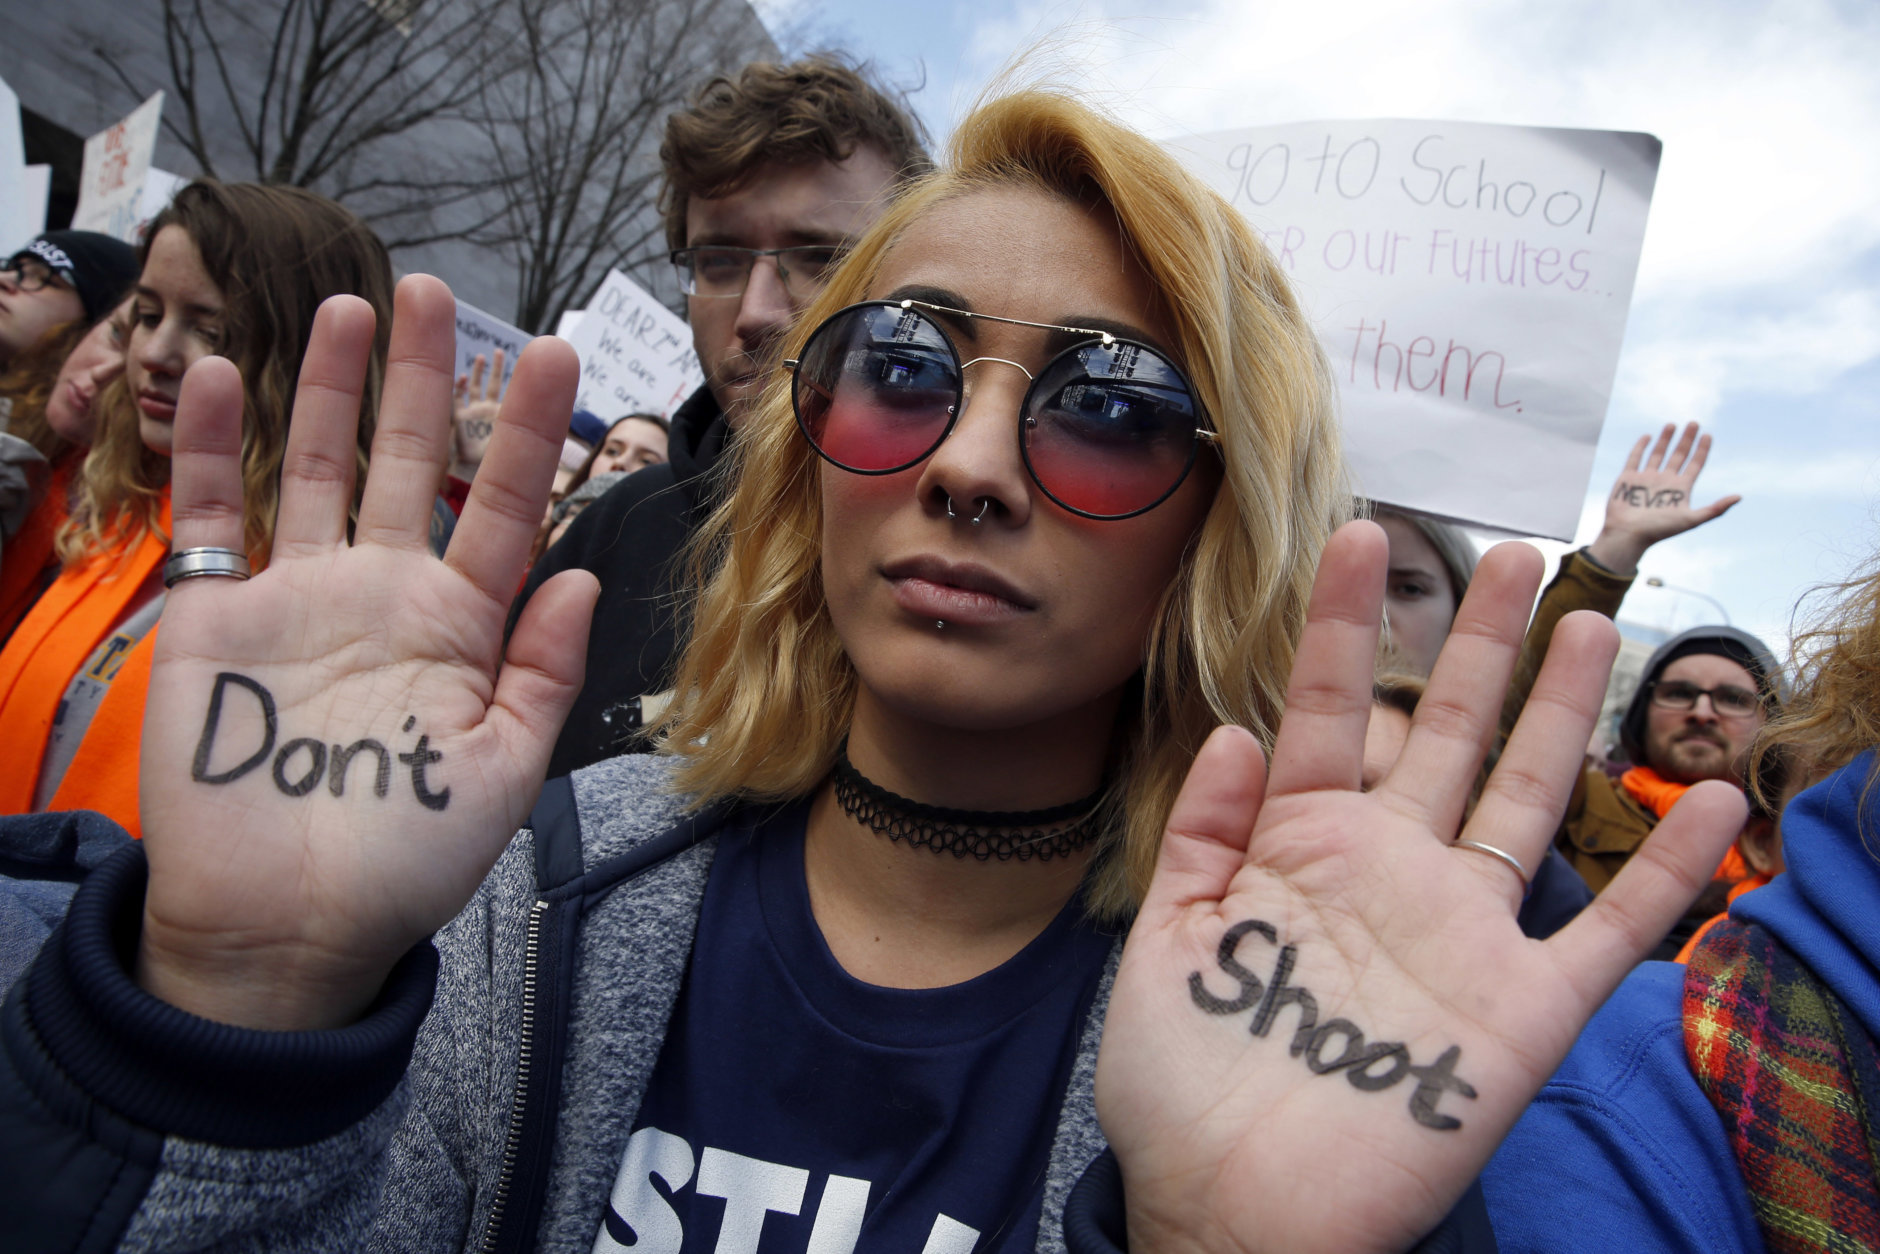 """Daisy Hernandez, 22, of Stafford, Va., wrote """"Don't Shoot,"""" on her hands during the """"March for Our Lives"""" rally in support of gun control, Saturday, March 24, 2018, in Washington. (AP Photo/Alex Brandon)"""